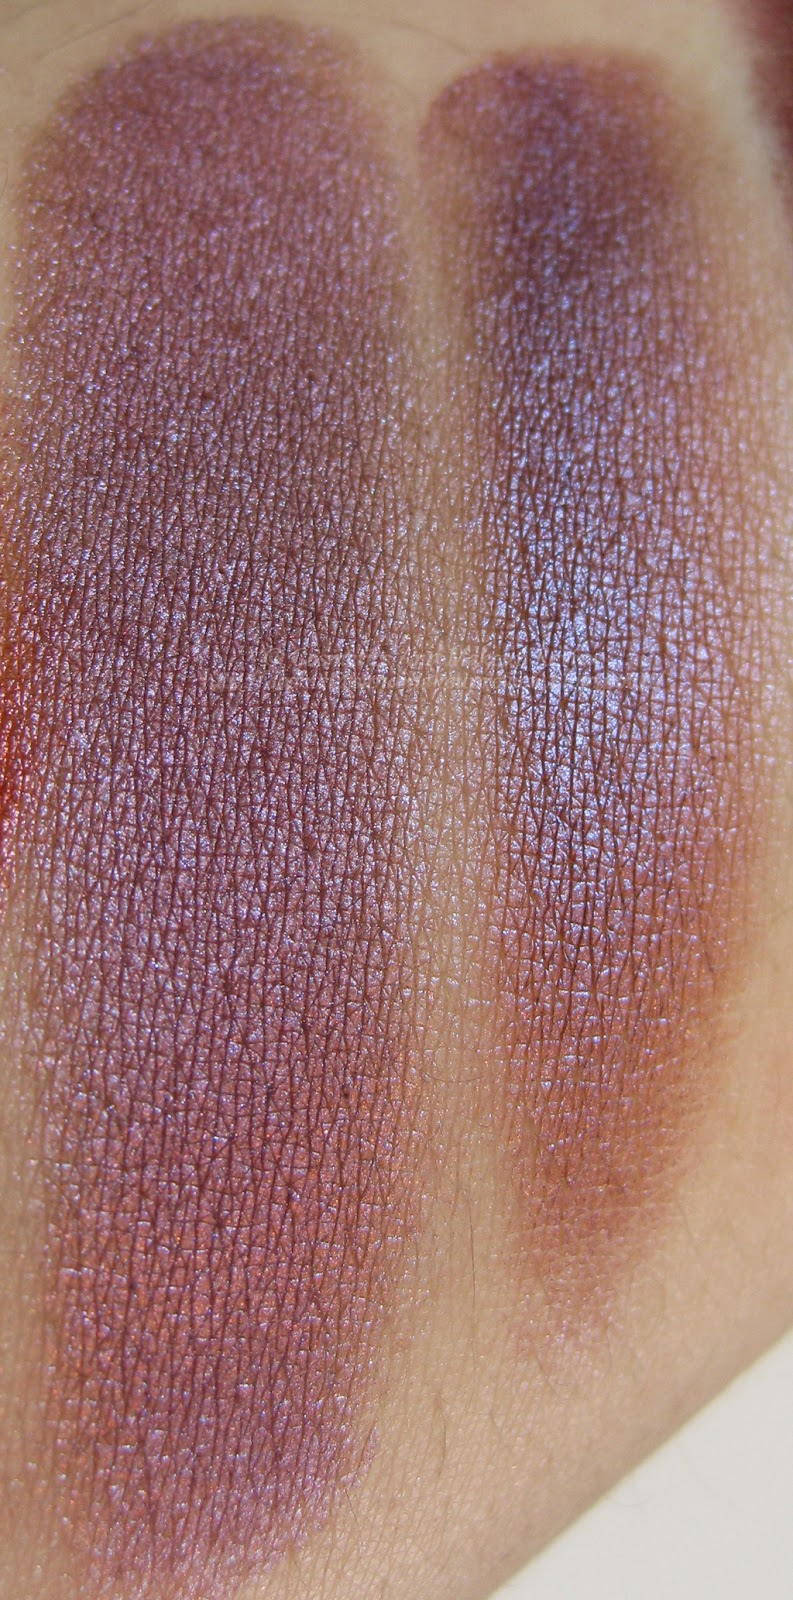 Neve Cosmetics - Pop Society Collection - Fuseaux swatches asciutto (sx) e bagnato (dx)